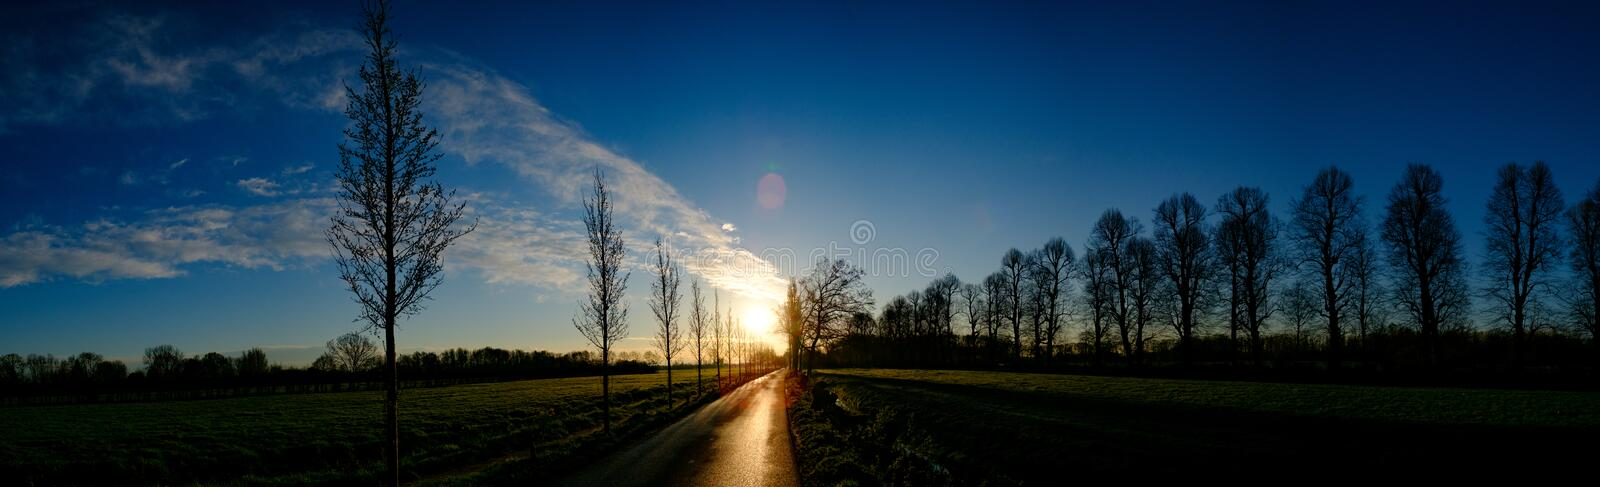 Silhouette of Piled Planted Trees on Shore royalty free stock photo